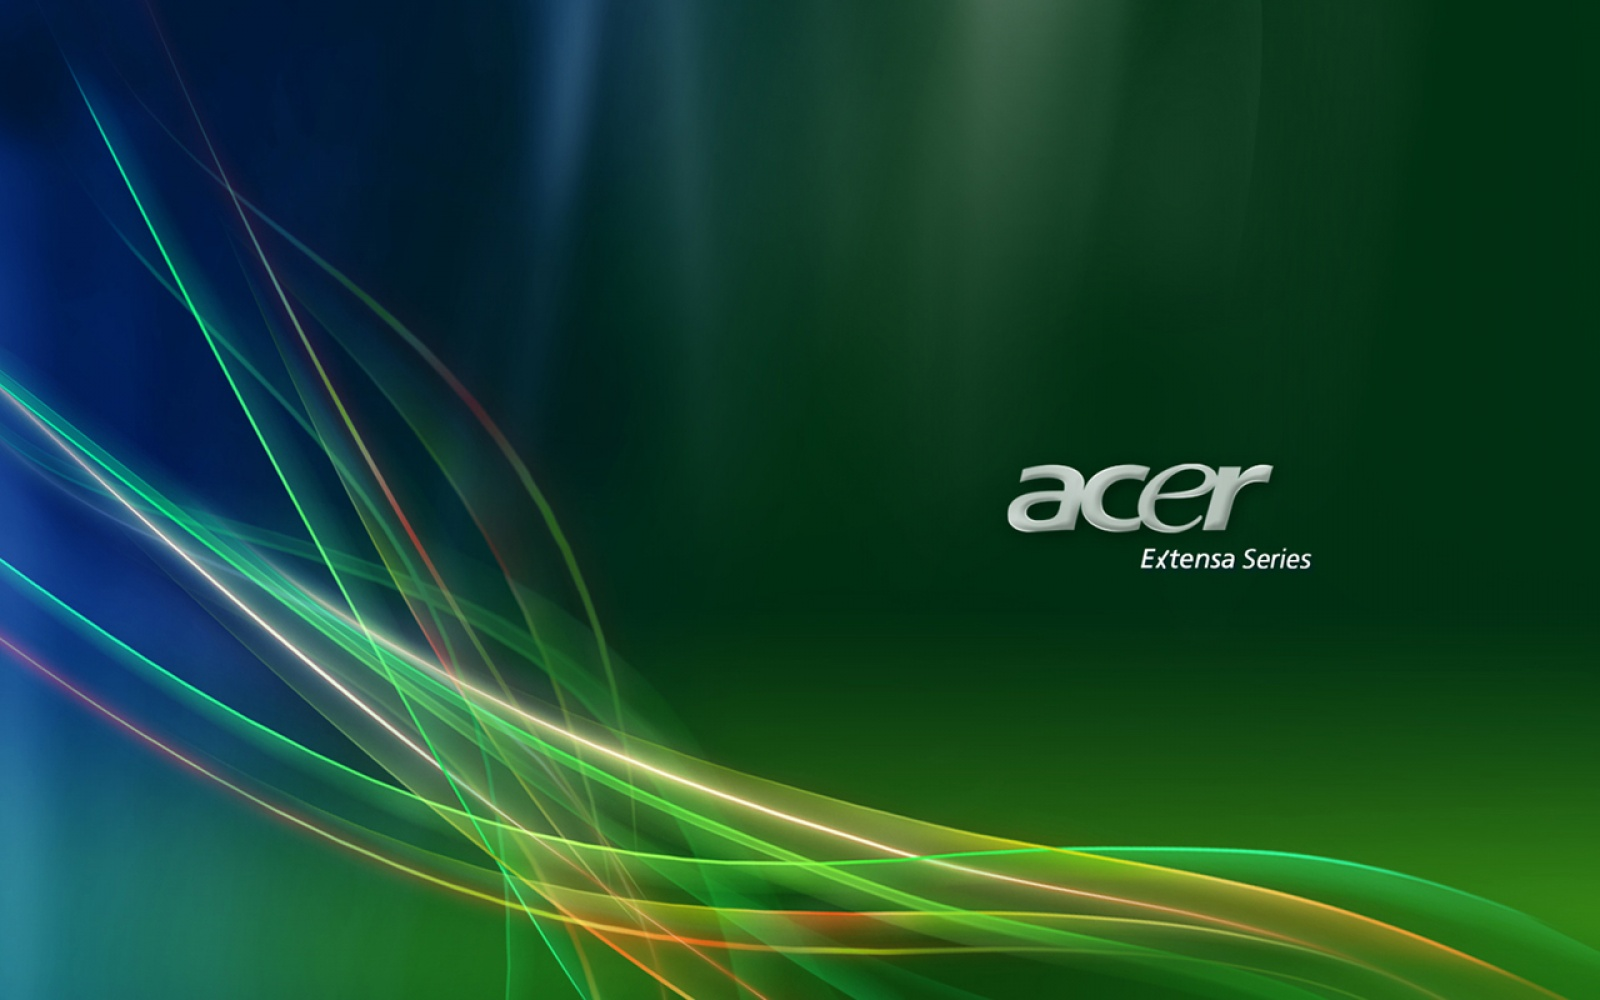 Collection of Acer Desktop Backgrounds on HDWallpapers